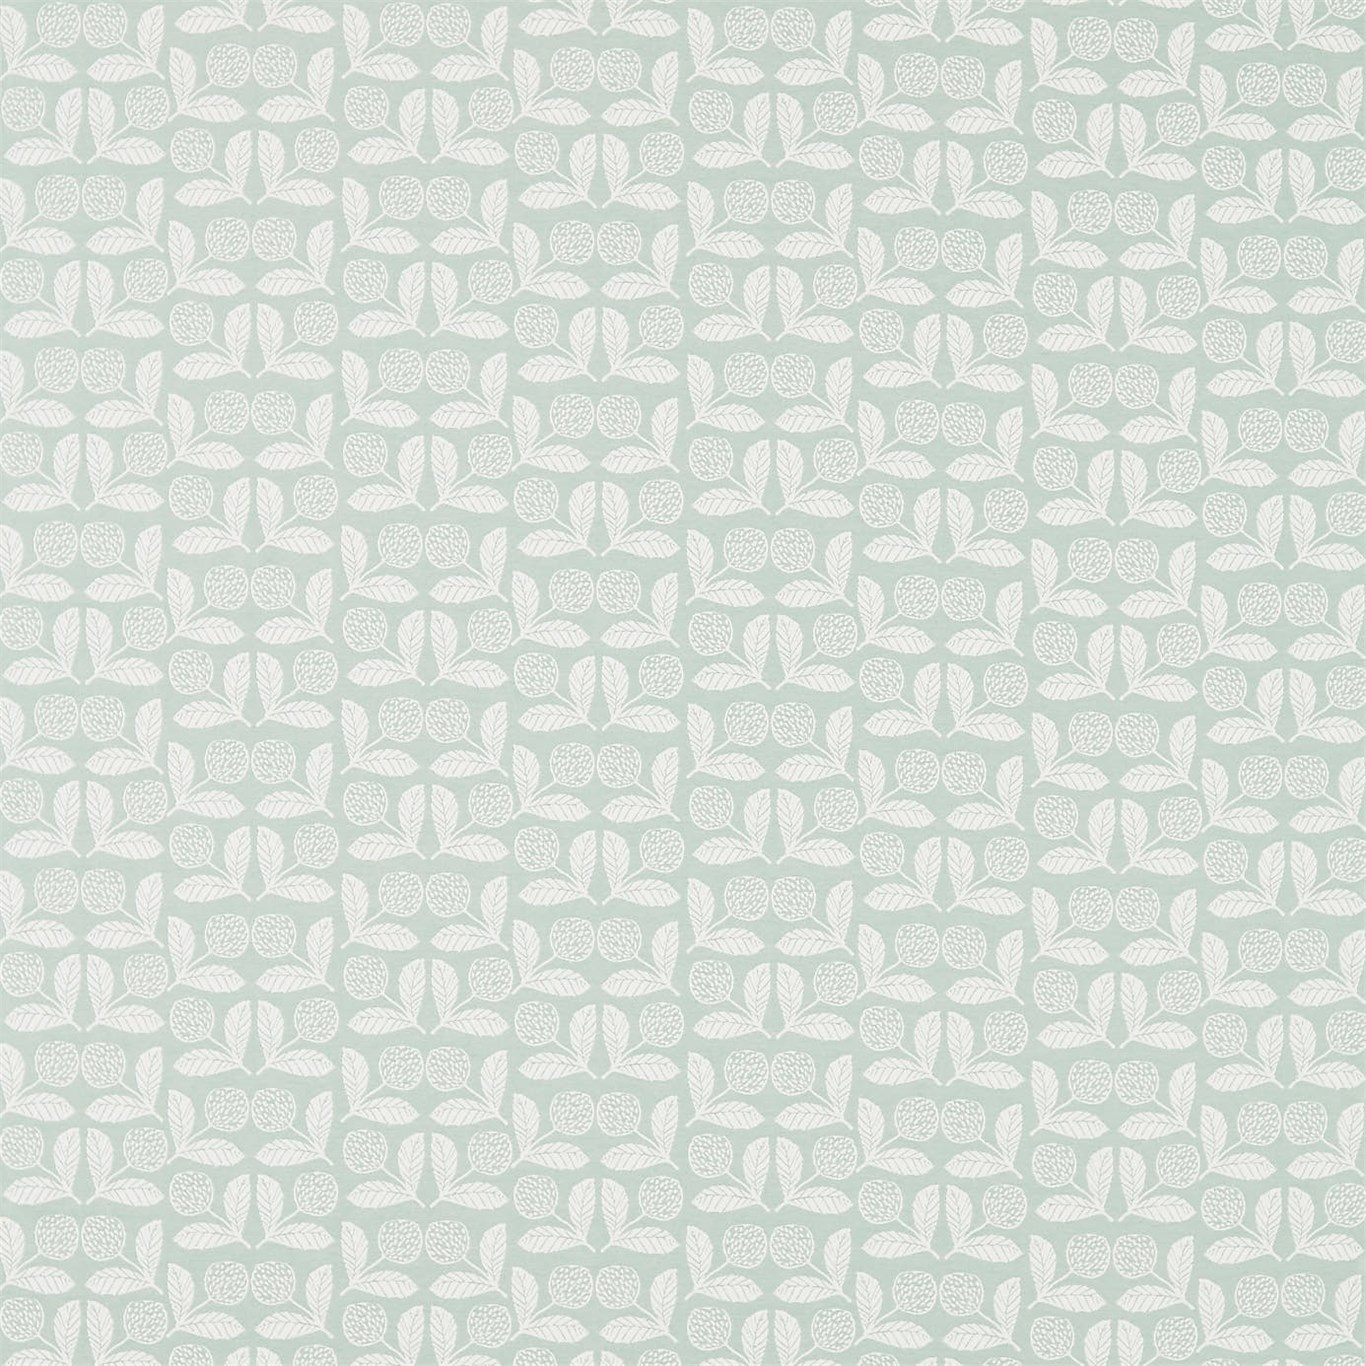 Image of Sanderson Home Seed Stitch Celadon Curtain Fabric 235871